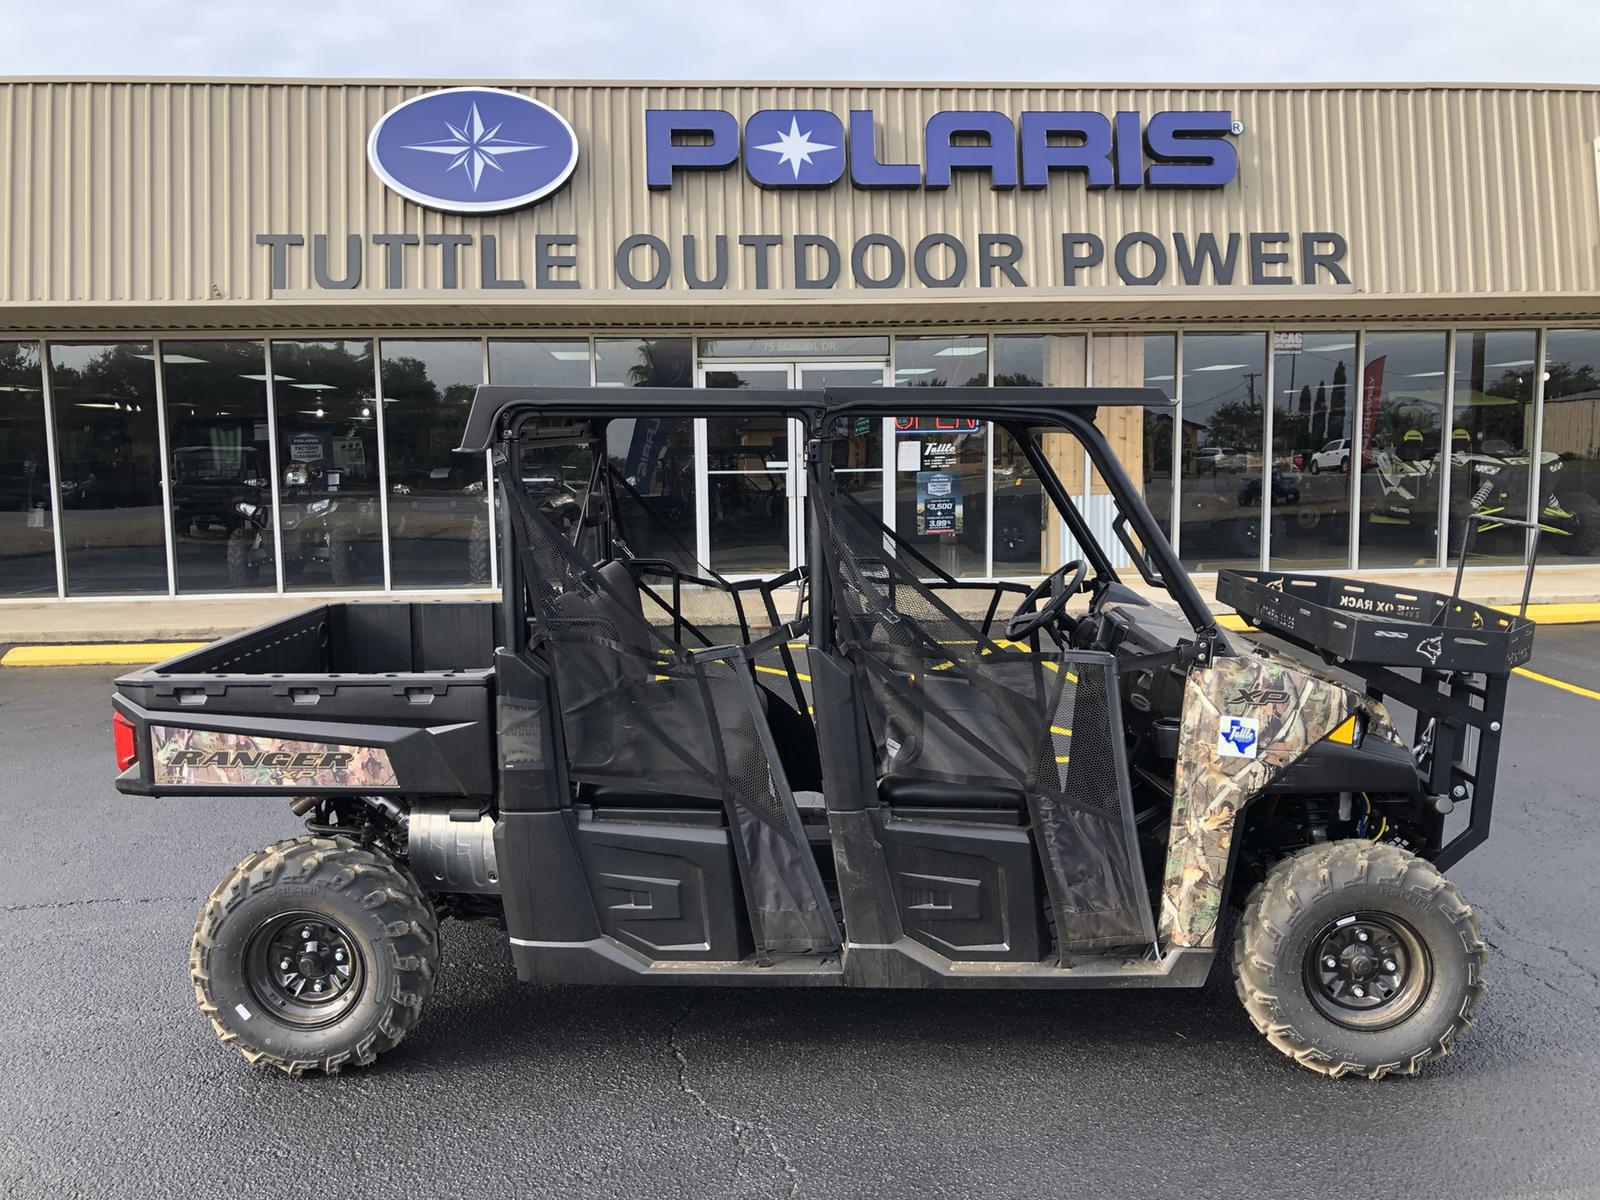 In-Stock New and Used Models For Sale in Poteet, TX Tuttle